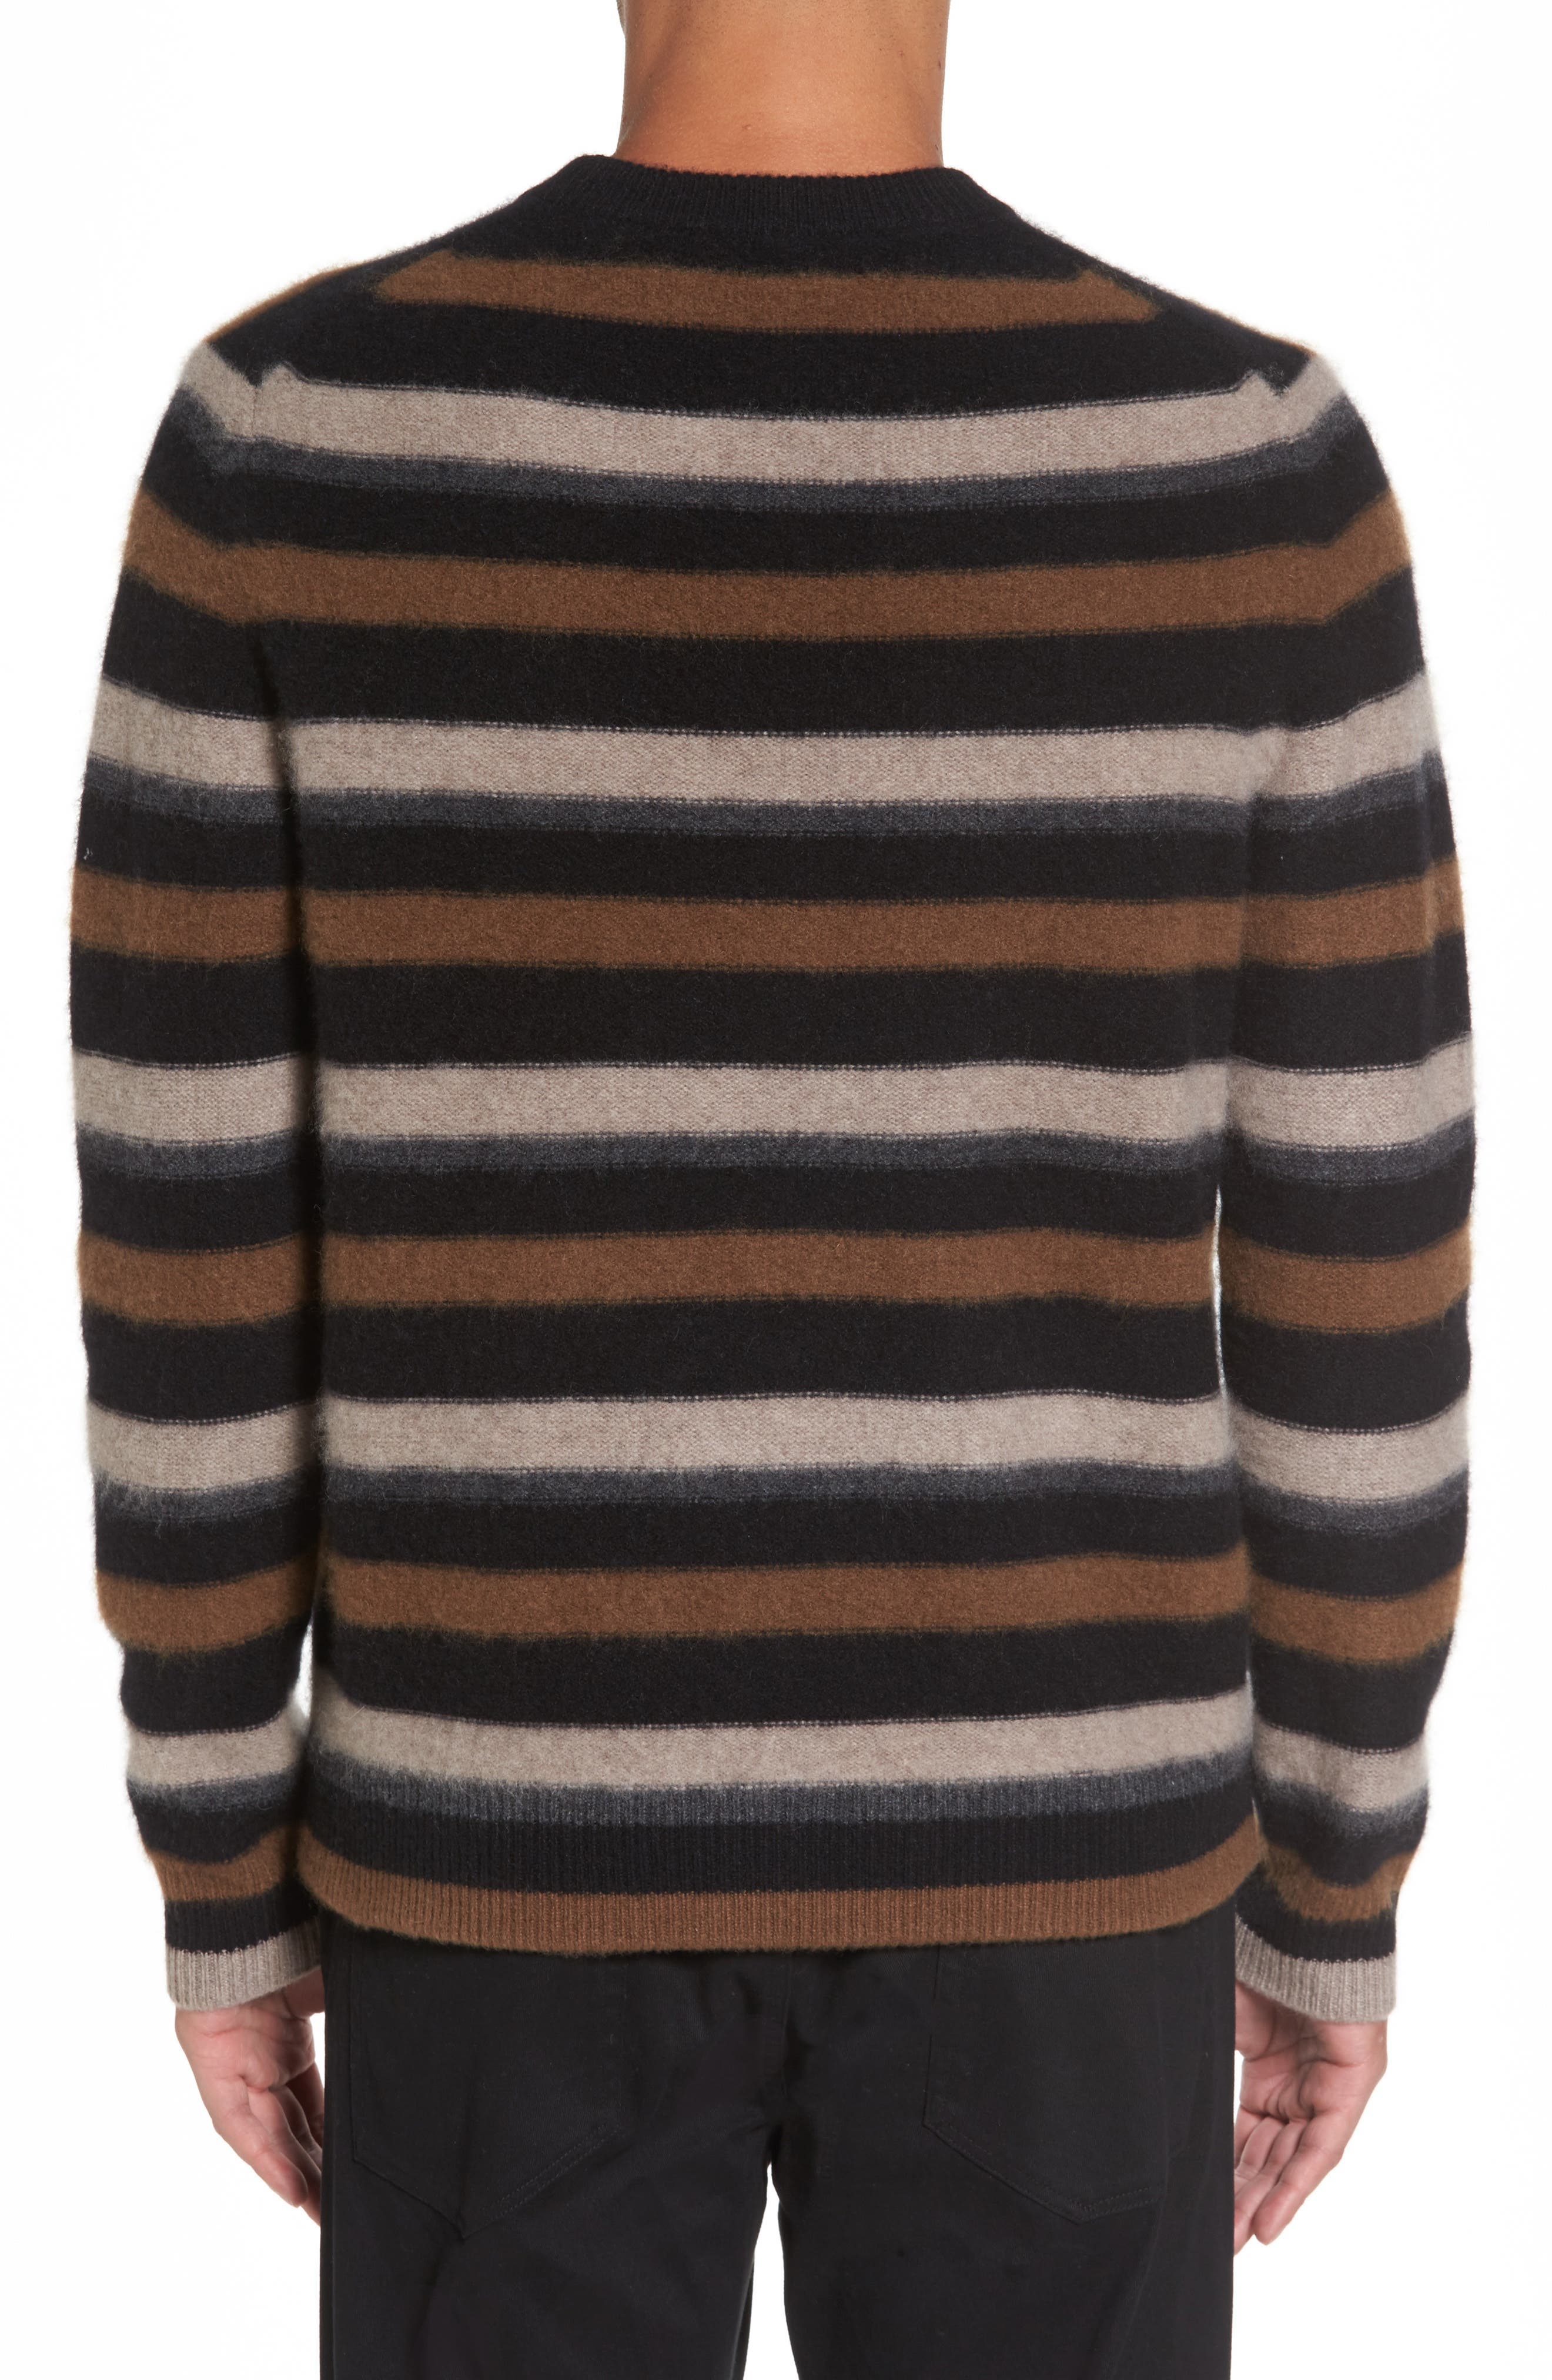 Stripe Cashmere Sweater,                             Alternate thumbnail 2, color,                             003